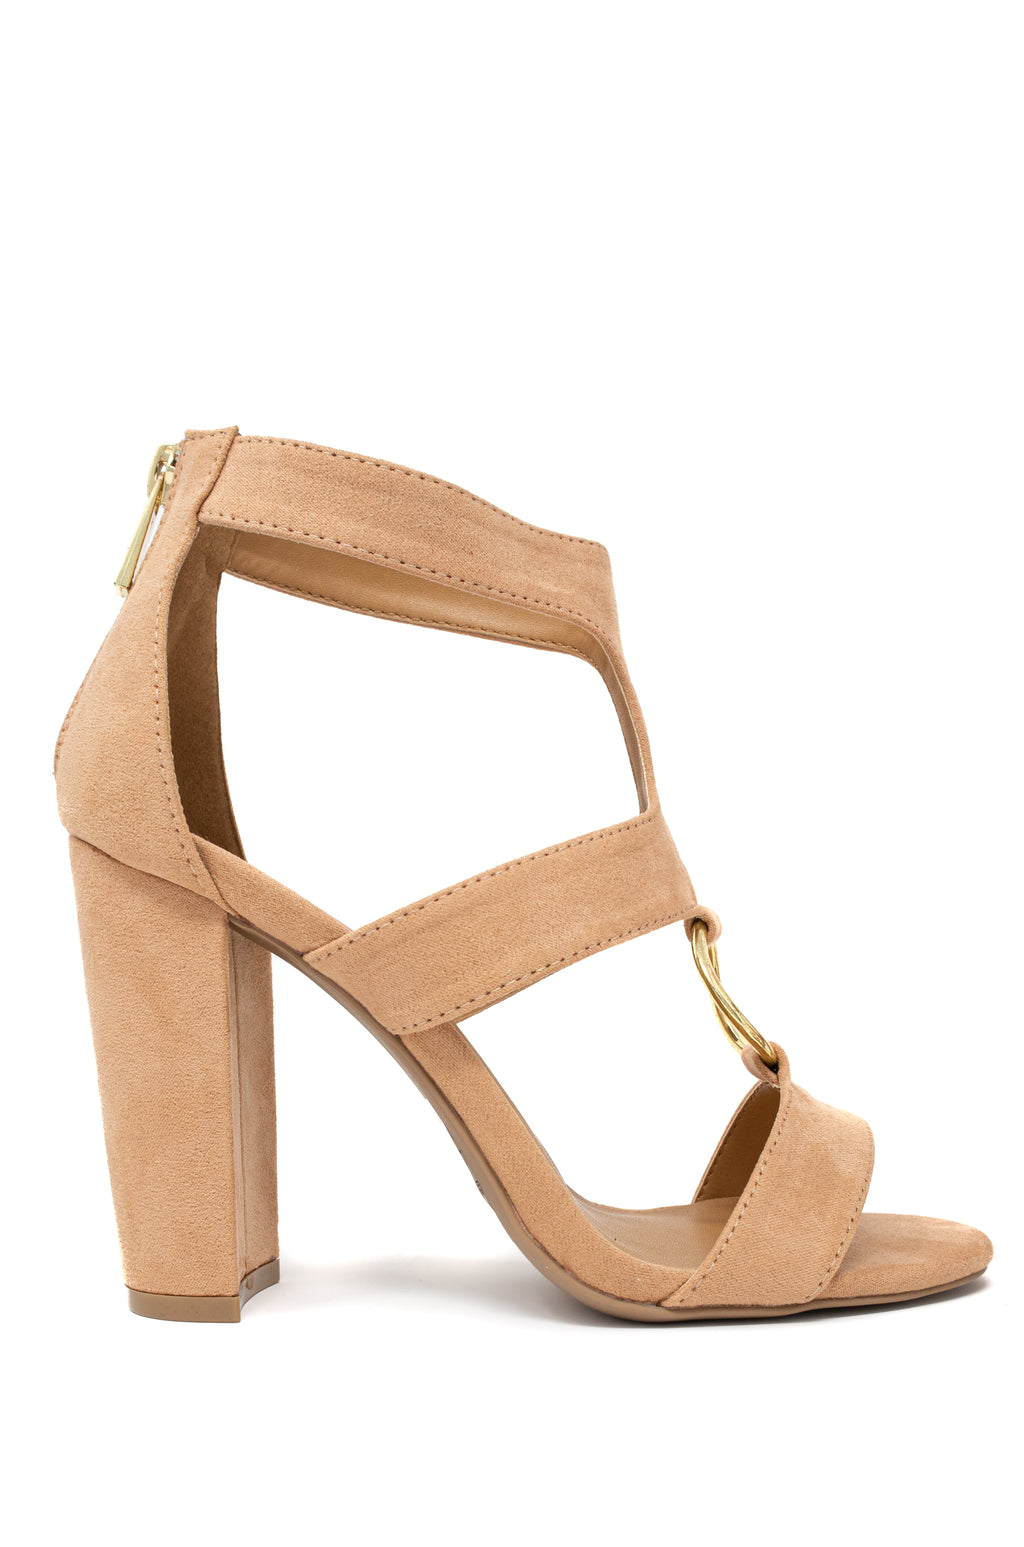 Good Girl - Blush Cutout Block Heels